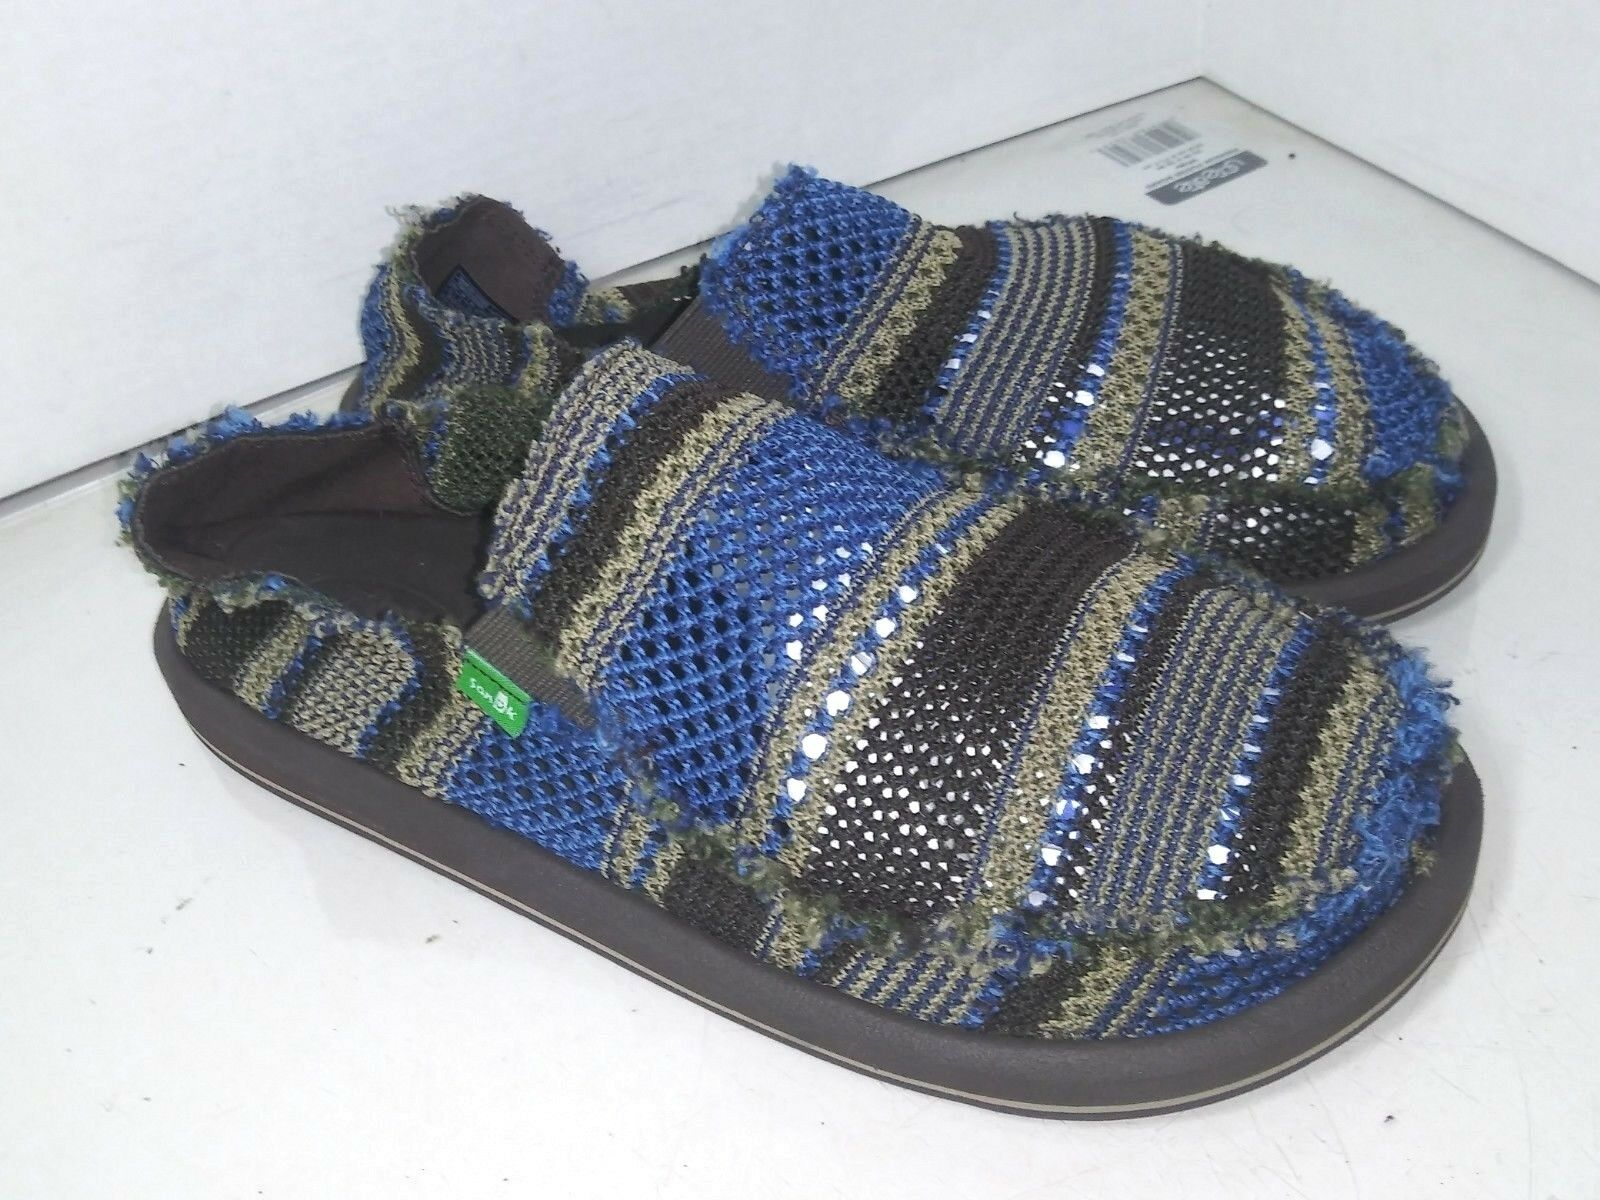 SanMens Yew-Knit Loafer Multicolor Size 10